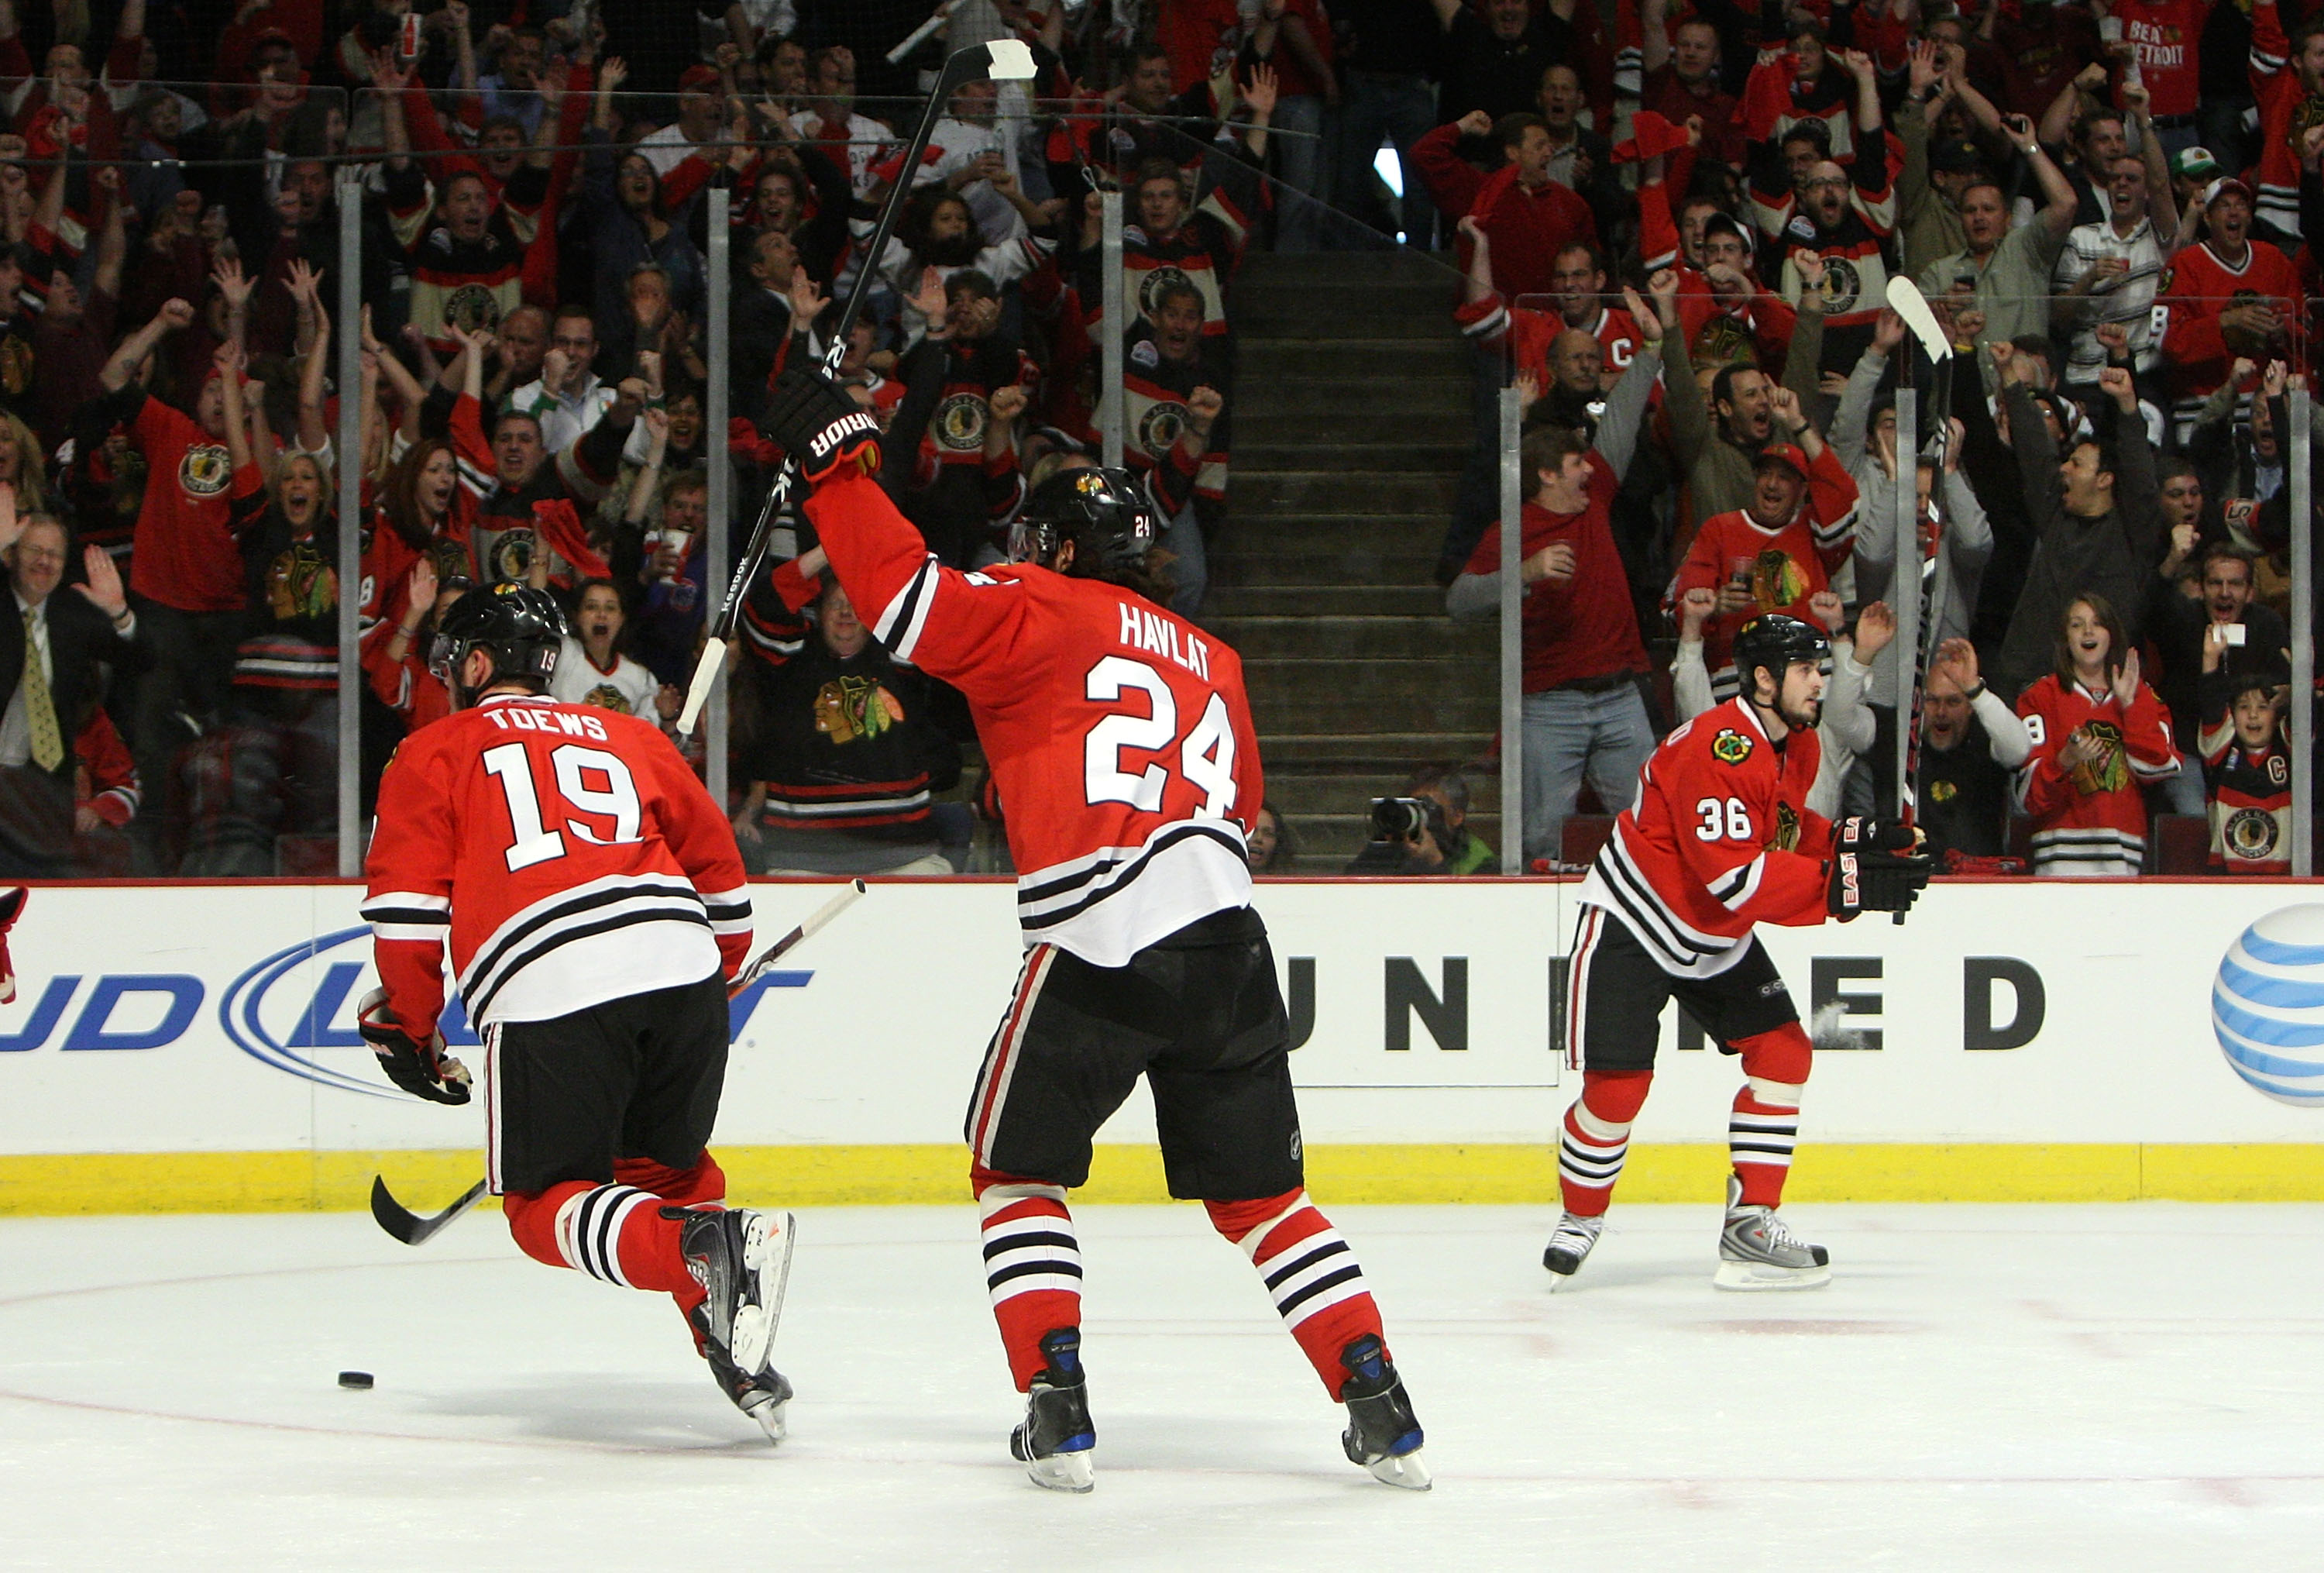 CHICAGO - MAY 22:  (L-R) Jonathan Toews #19, Martin Havlat #24 and Dave Bolland #36 of the Chicago Blackhawks celebrate after Patrick Sharp scored a power play goal in the first period against the Detroit Red Wings during Game Three of the Western Confere